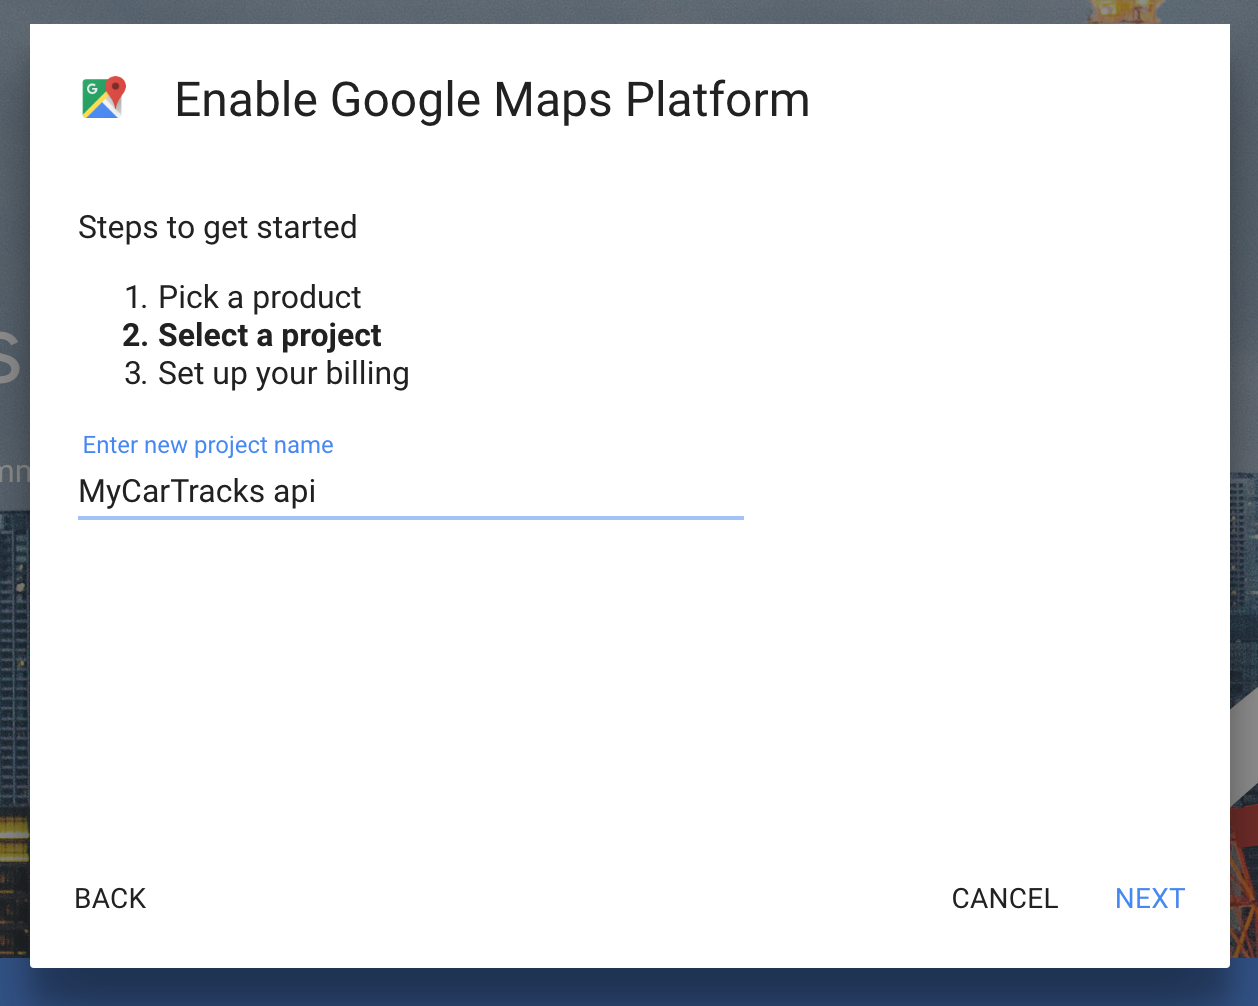 Google Maps enter project name - MyCarTracks